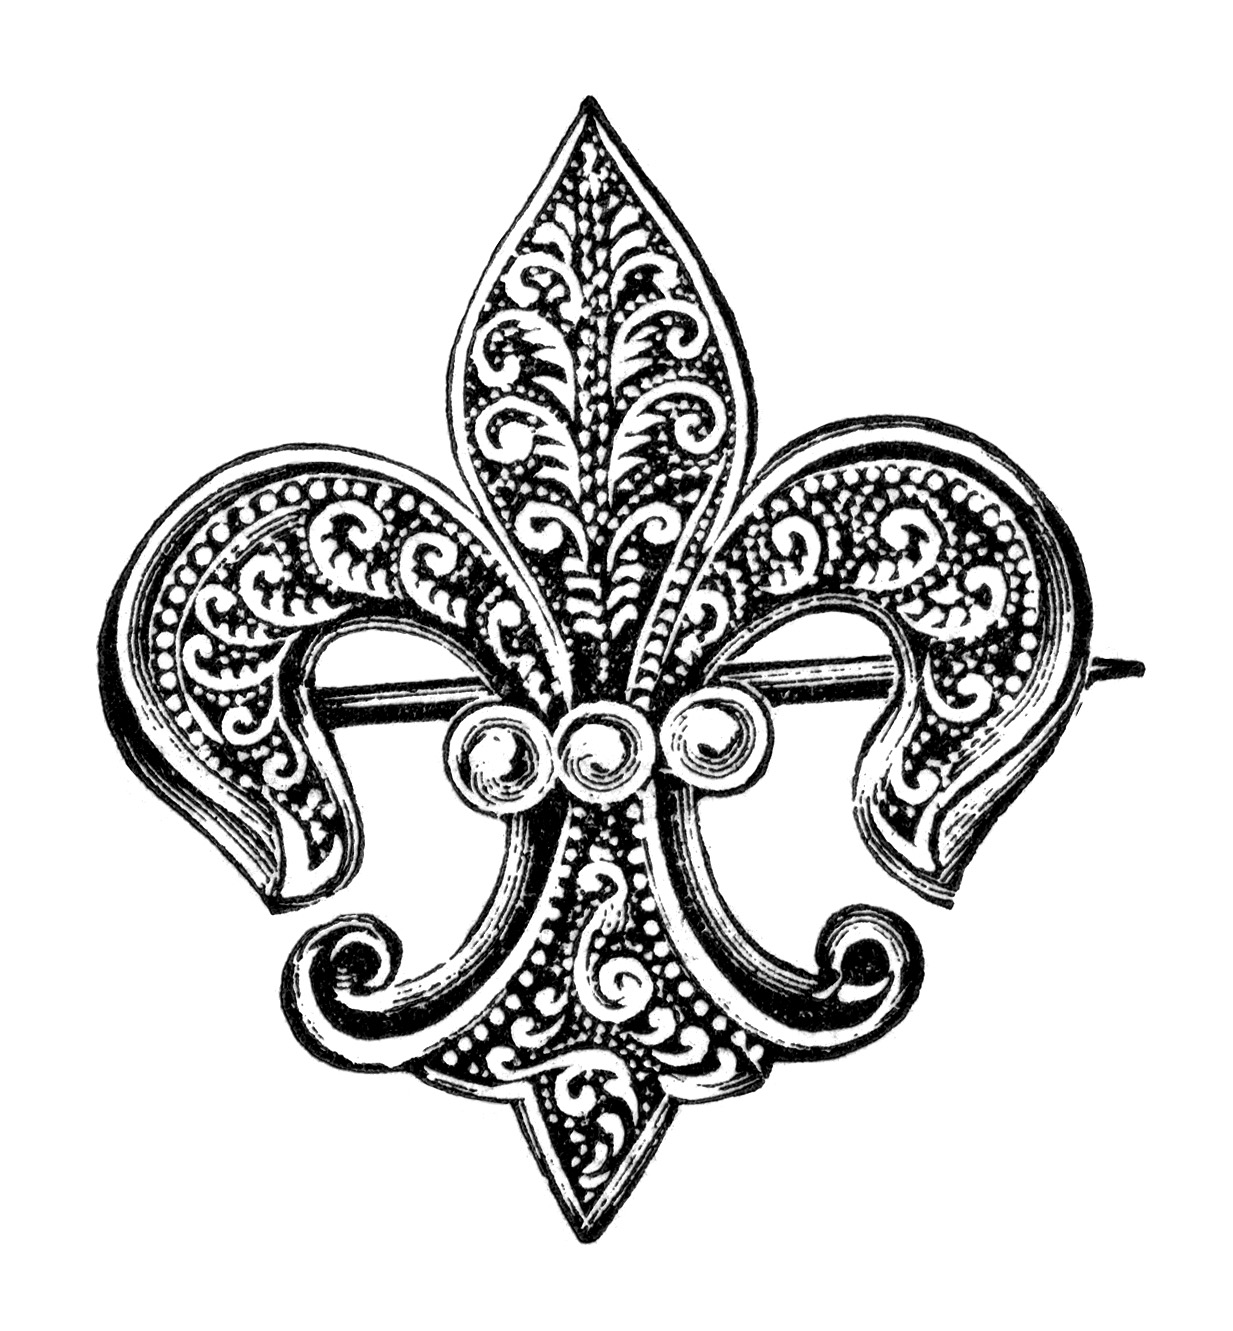 Vintage Brooch Clipart Fleur De Lis Clip Art Antique Brooch With.